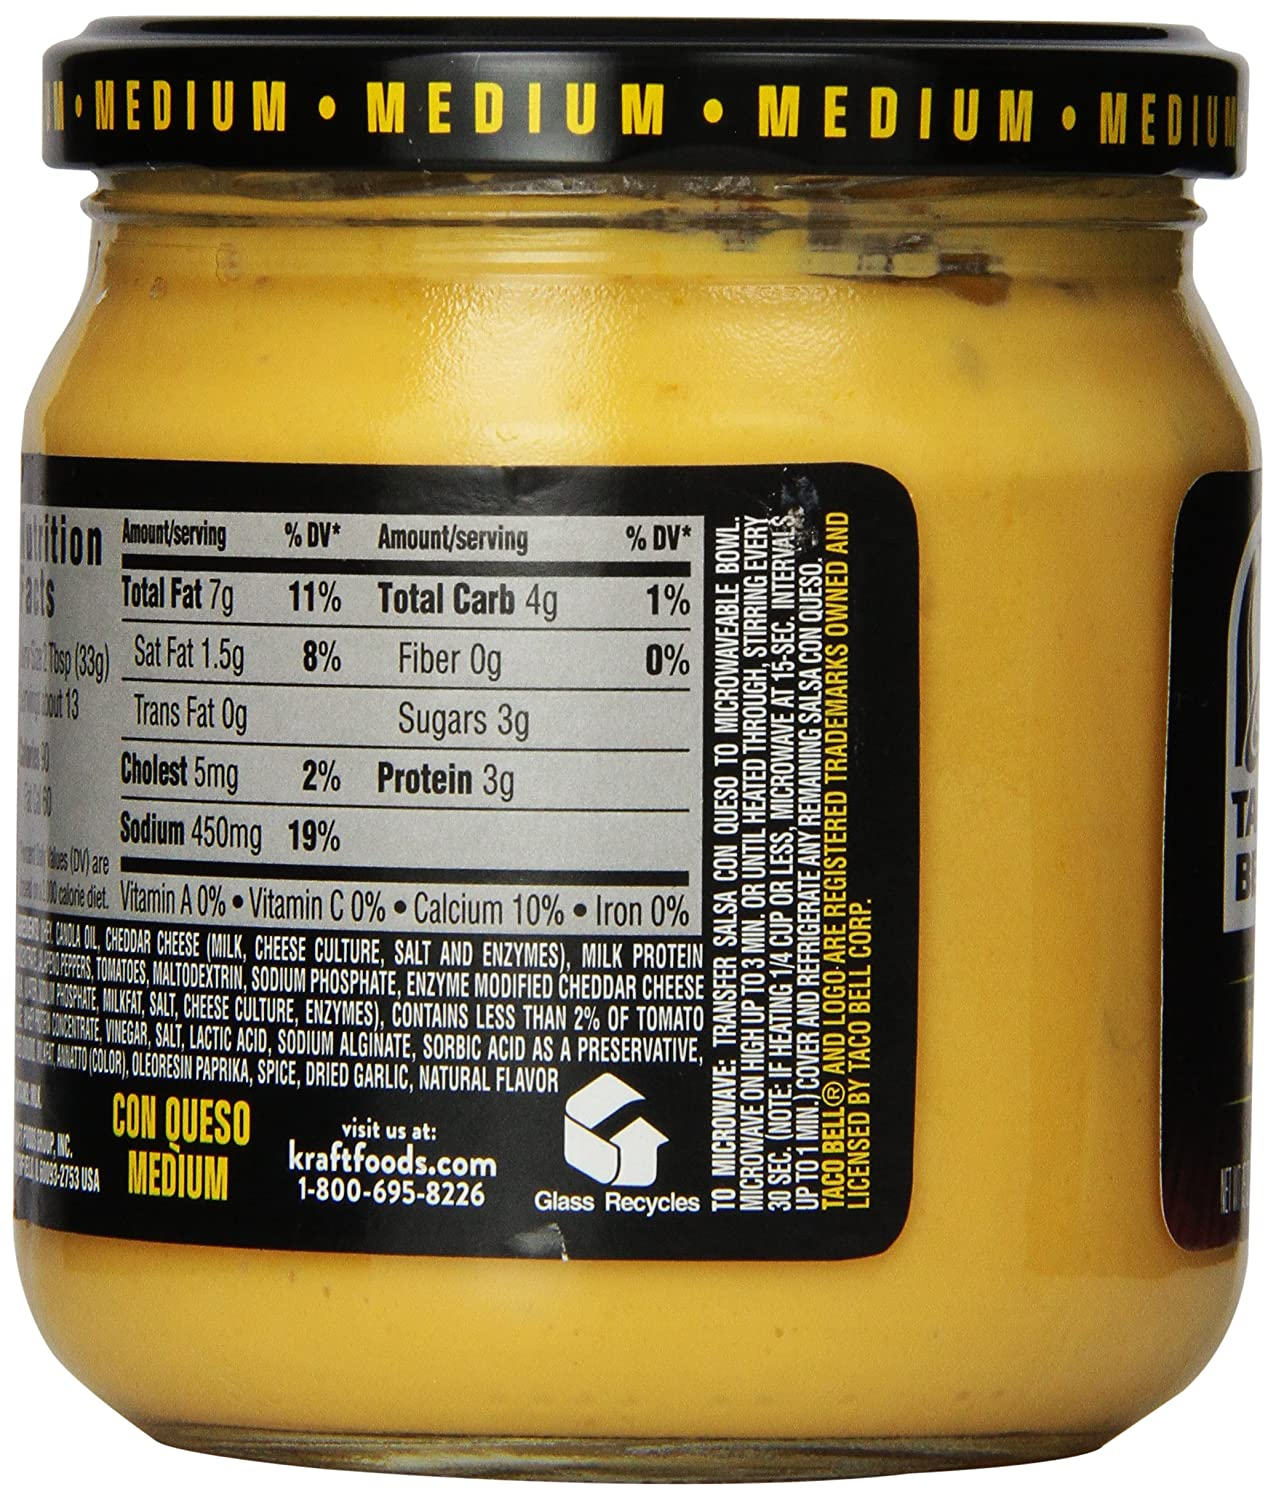 Amazon.com: Taco Bell Salsa con Queso, Cheese Dip, Medium, 15 oz. (Pack of 4)